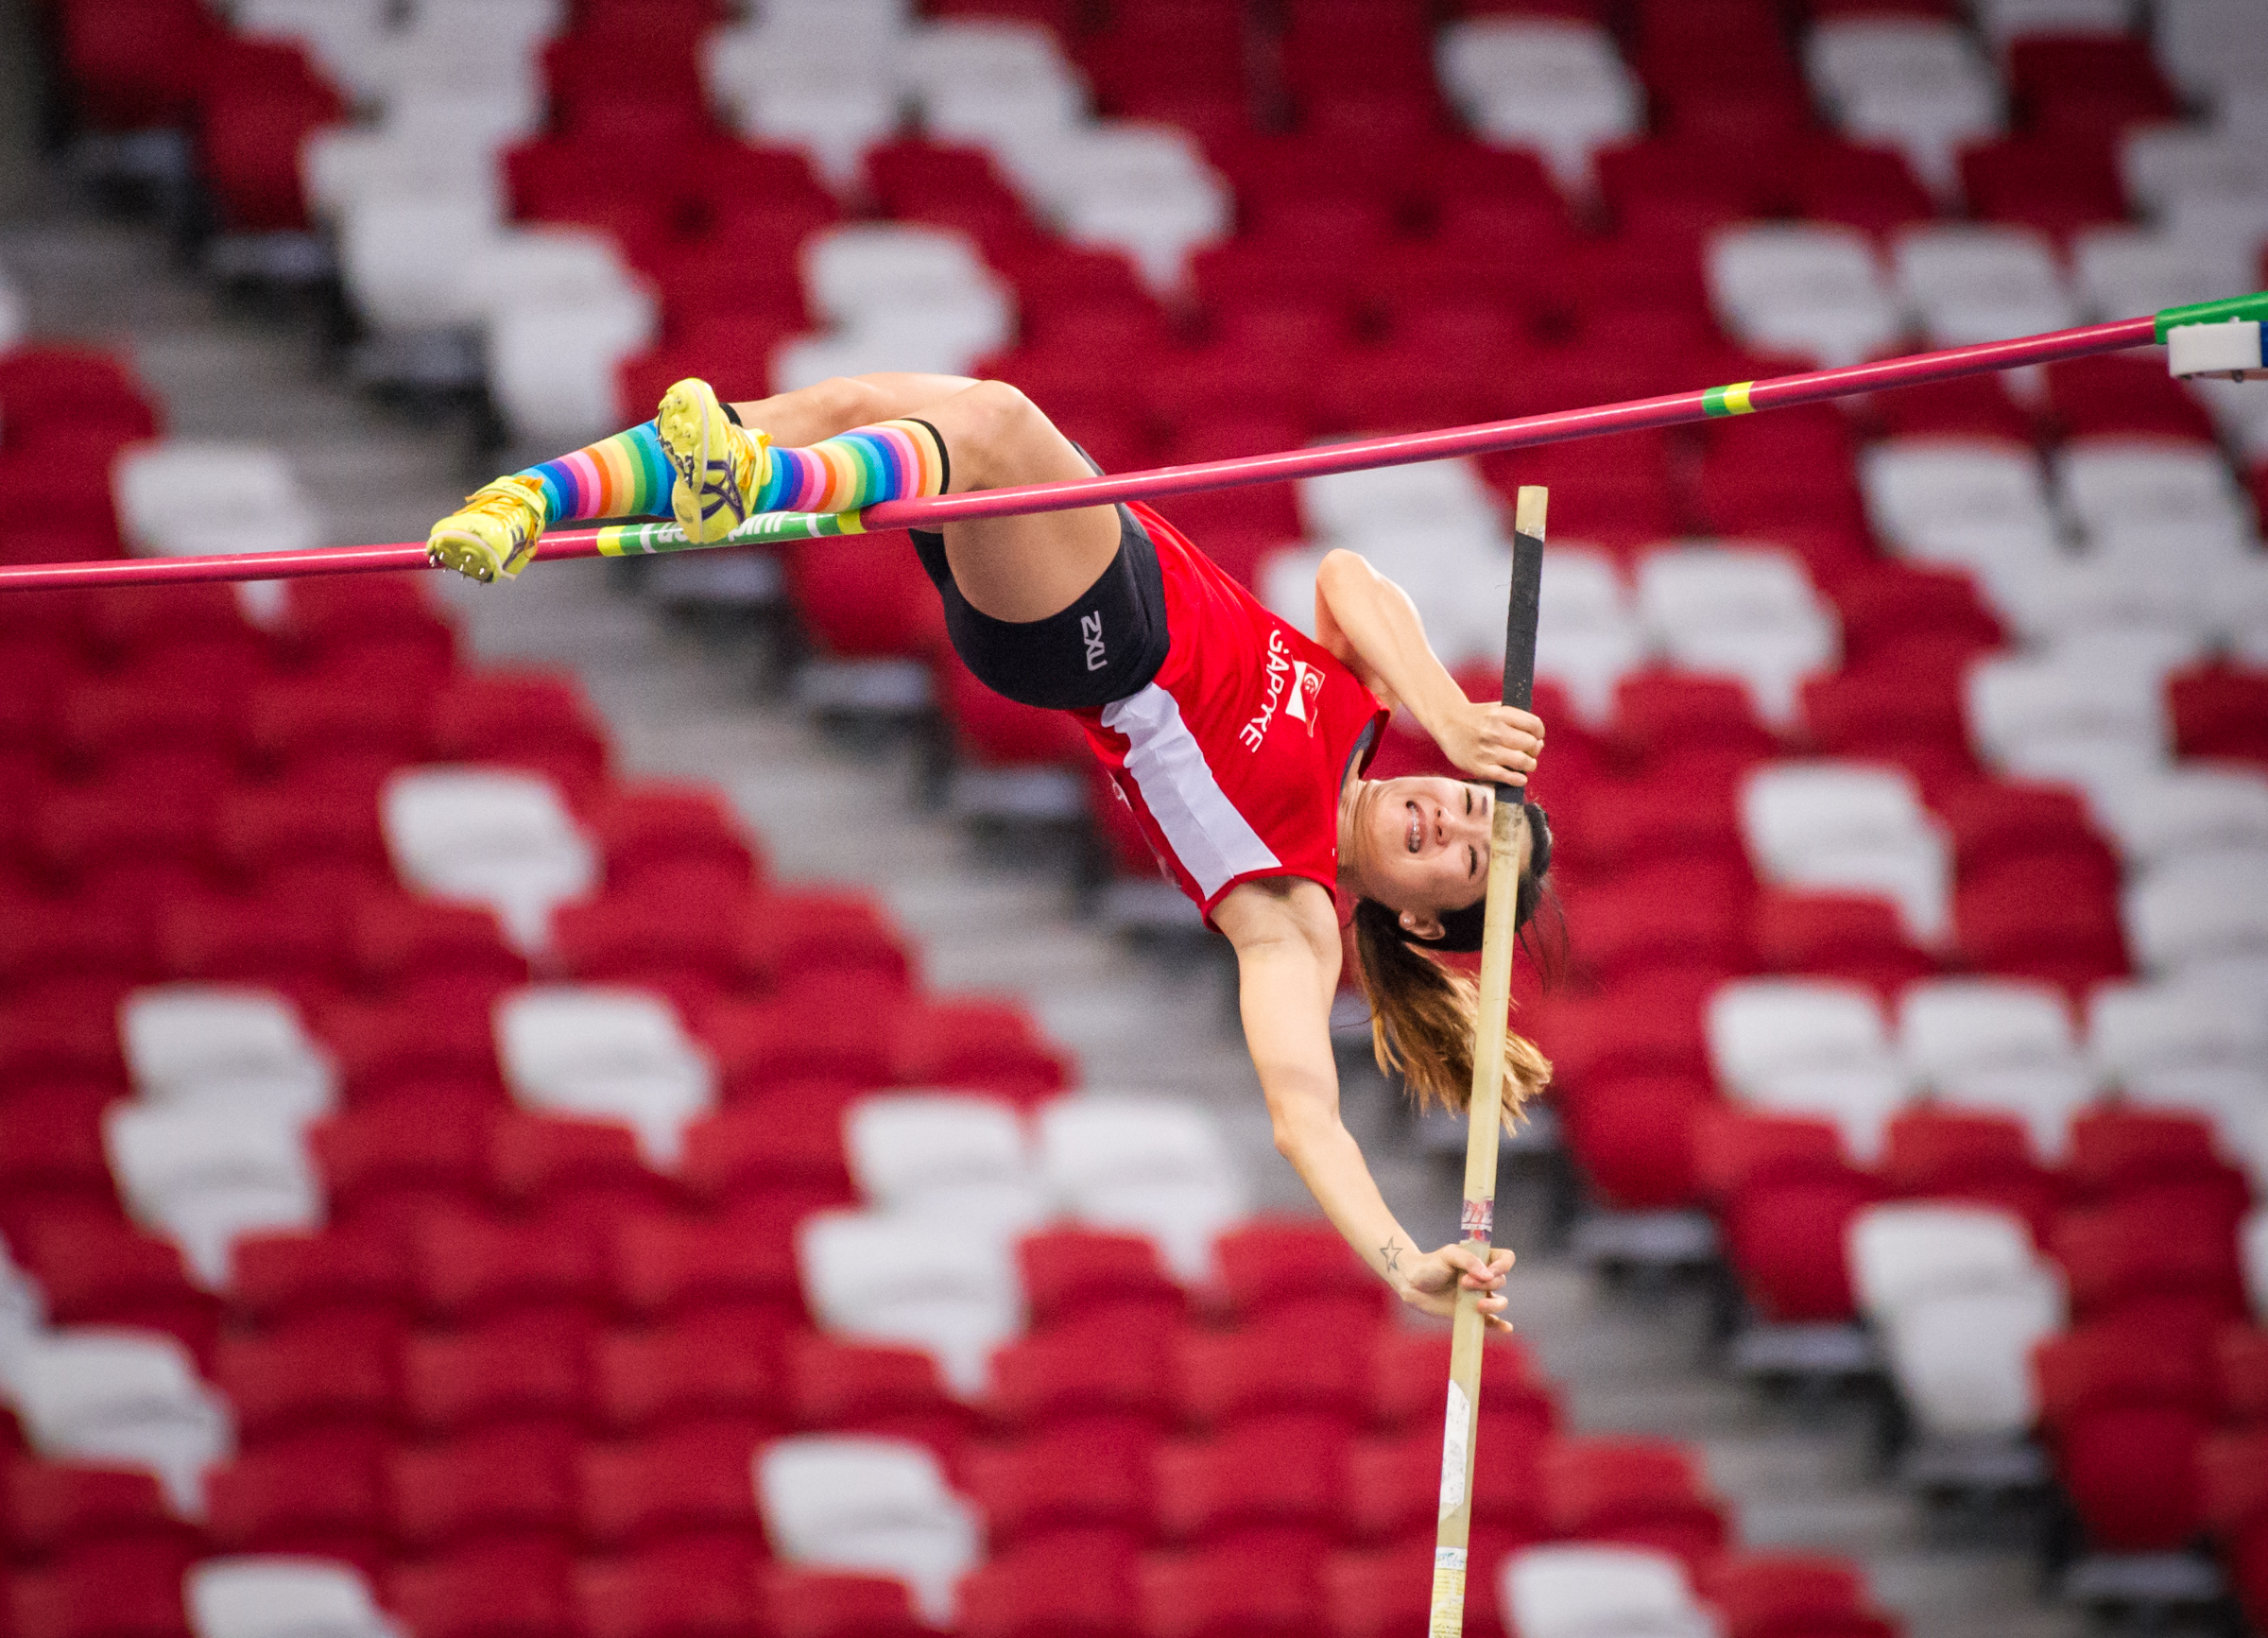 A Singaporean Pole Vaulter prepares to fly over the bar during the Singapore Open Track and Field Championships held at the Singapore Sports Hub.